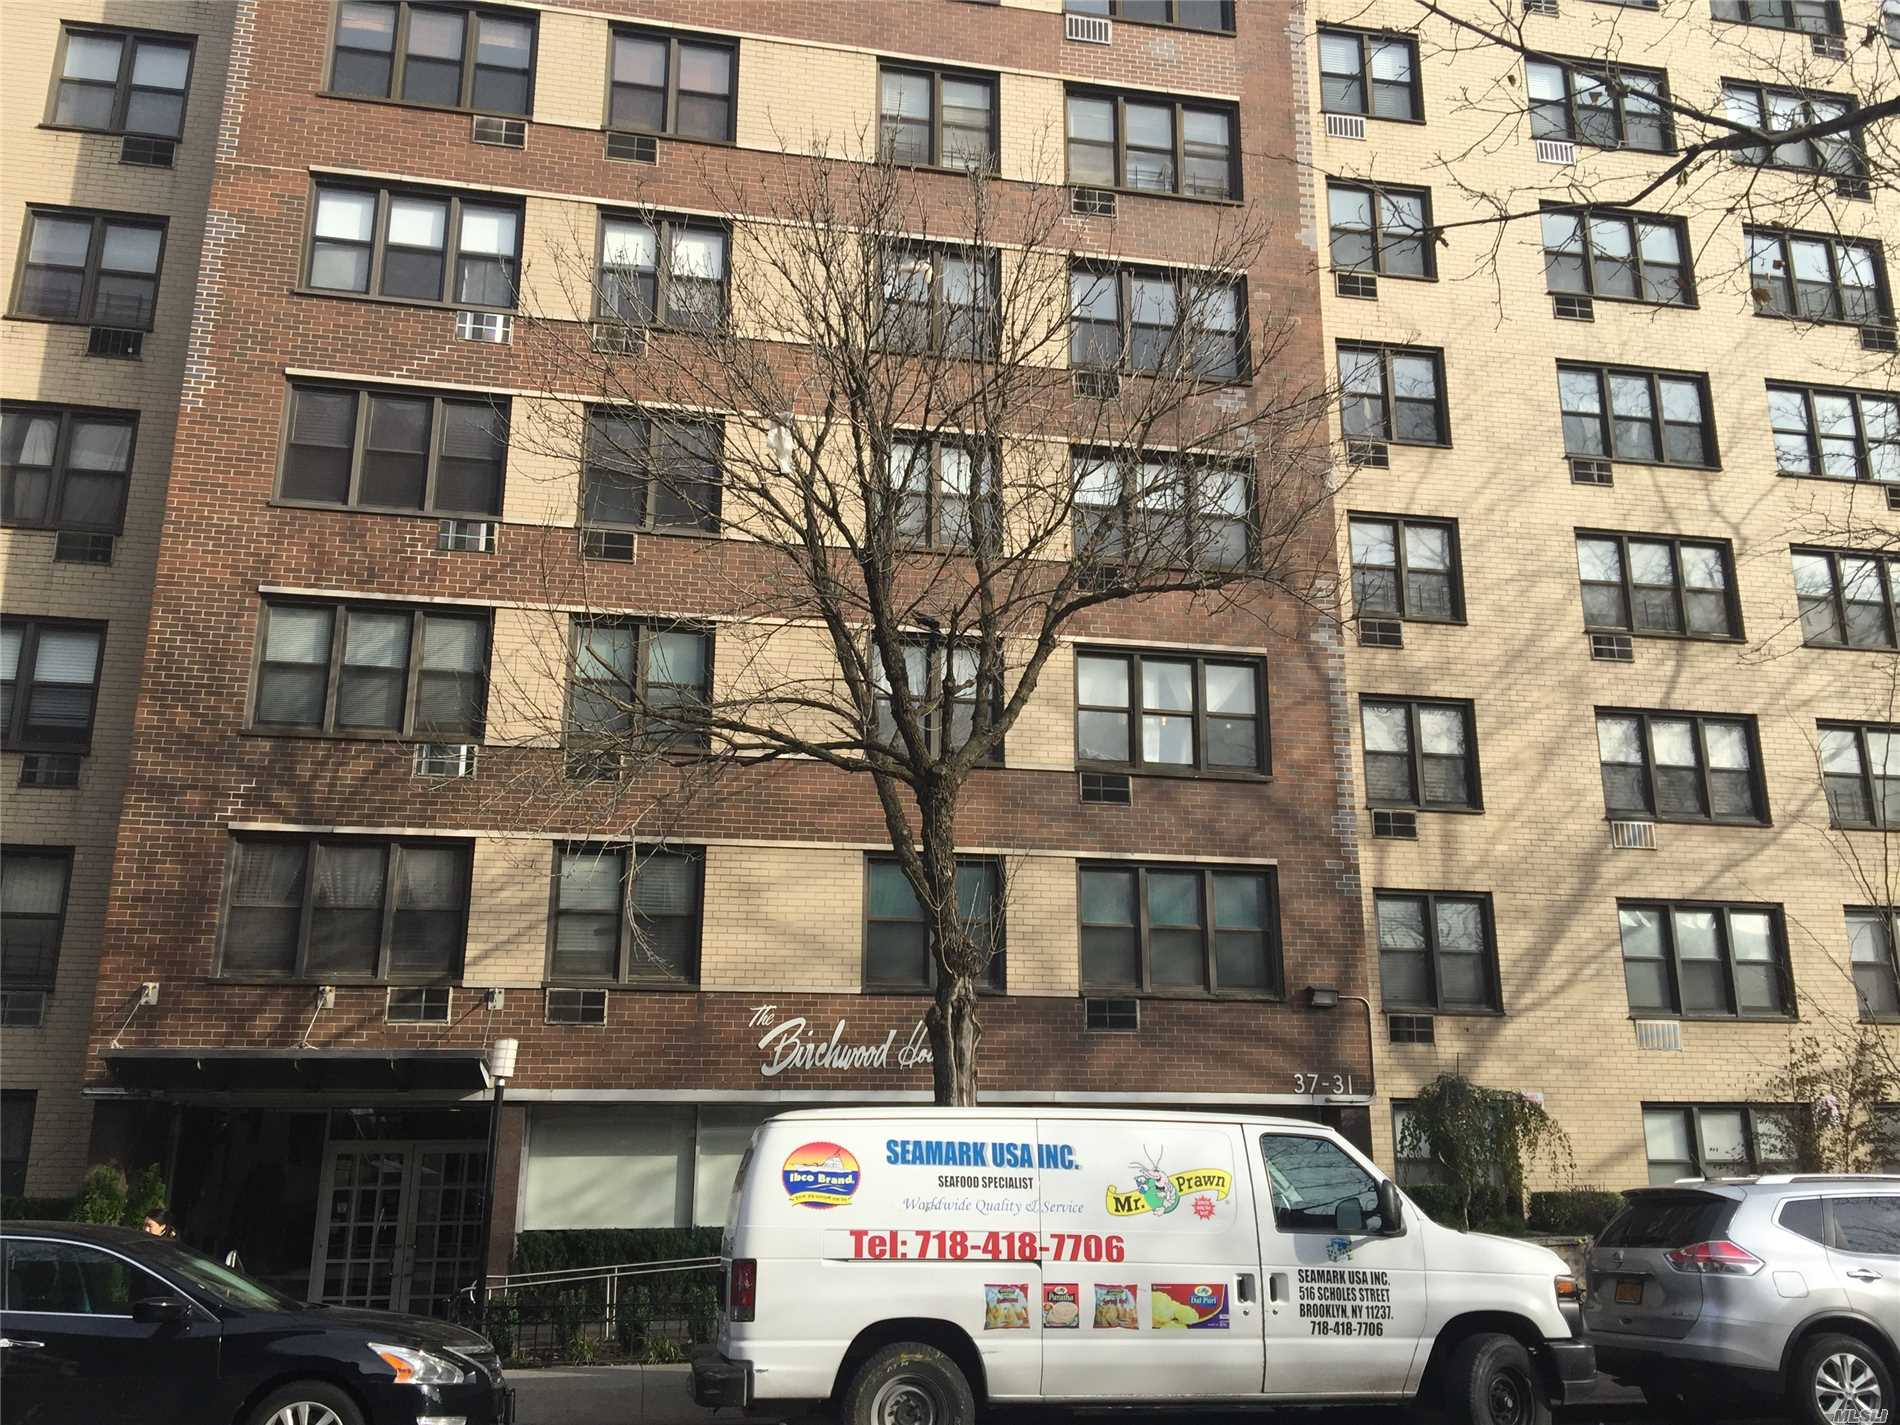 Fully Renovated Junior4--2Brs Corner Unit, Bright With Natural Light & Excellent Ventilated Unit--Windowed Kitchen W/Custom Built Cabinatery, Windowed Bathroom, Parquet Floors Throughout, A Block Away From Subway Station/Shopping Districts, Solar Energy Efficient Building.